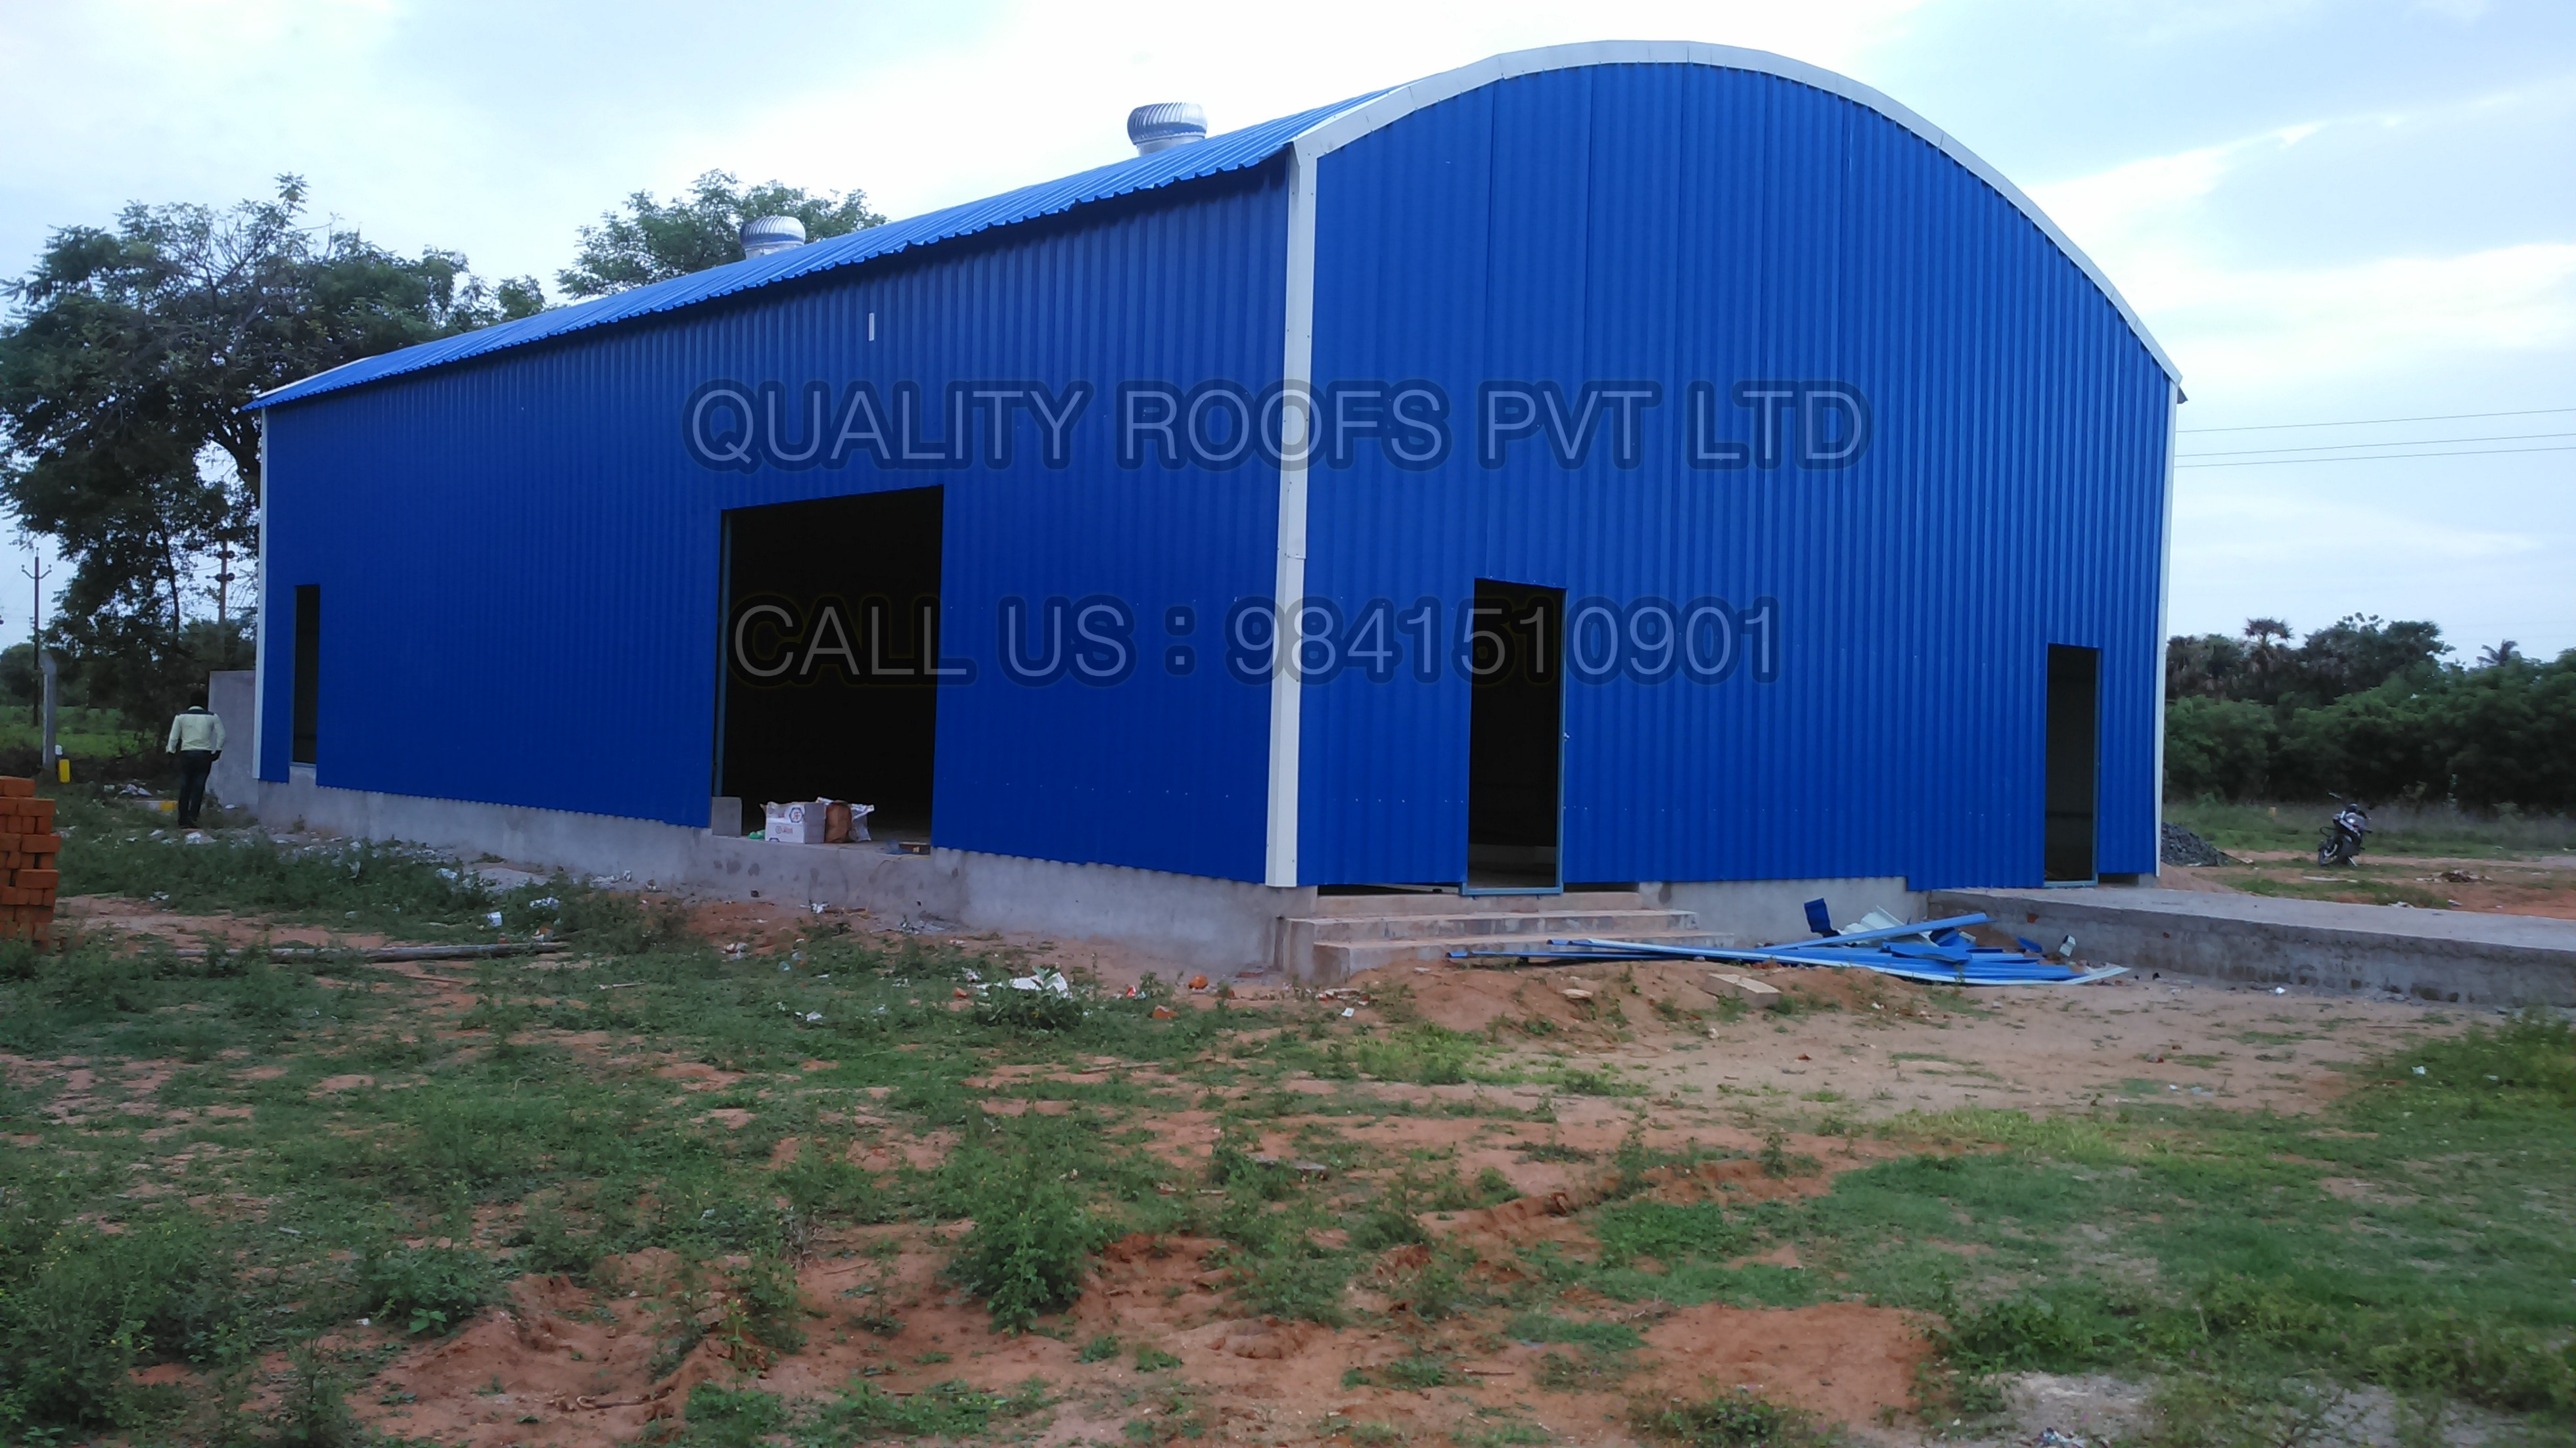 Best Industrial Roofing Contractors in Chennai. we are the best Industrial Roofing Contractors In Chennai, we undertake all kinds of Industrial Roofing services and we give best Industrial roofing solutions. we serve all over Tamilnadu. we are using best quality Roofing Sheets and Structures and our rate is very competitive.